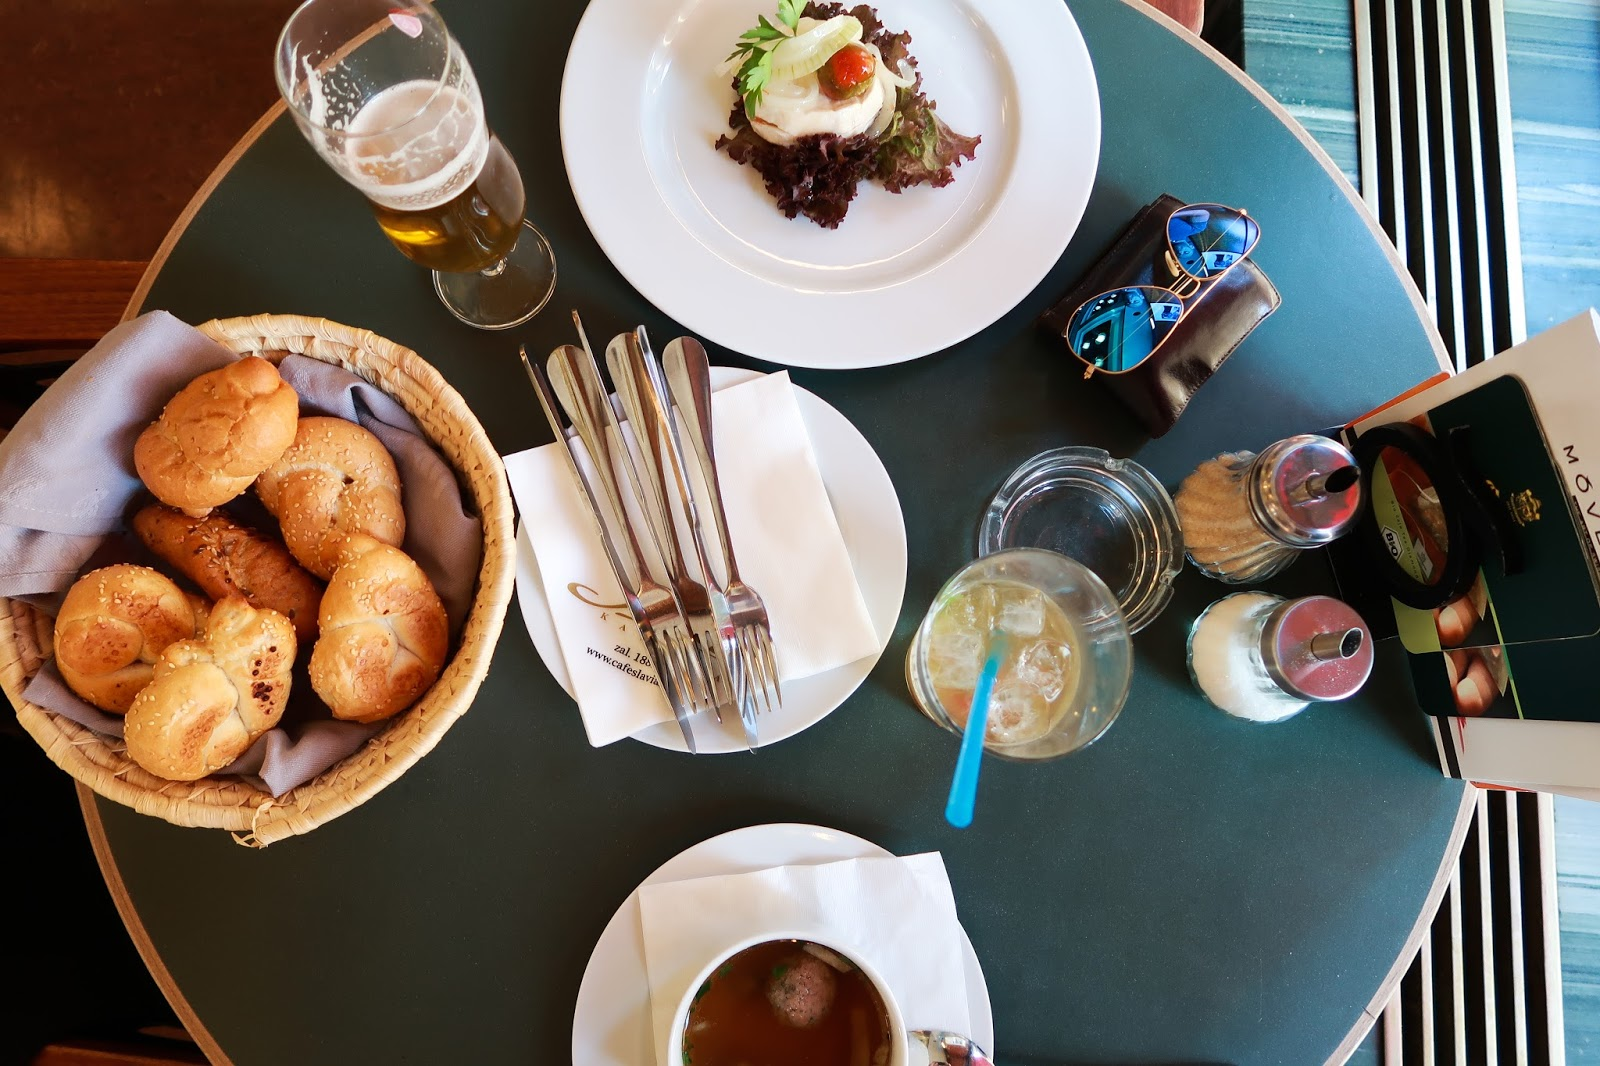 Prague's best known cafe: Cafe Slavia review